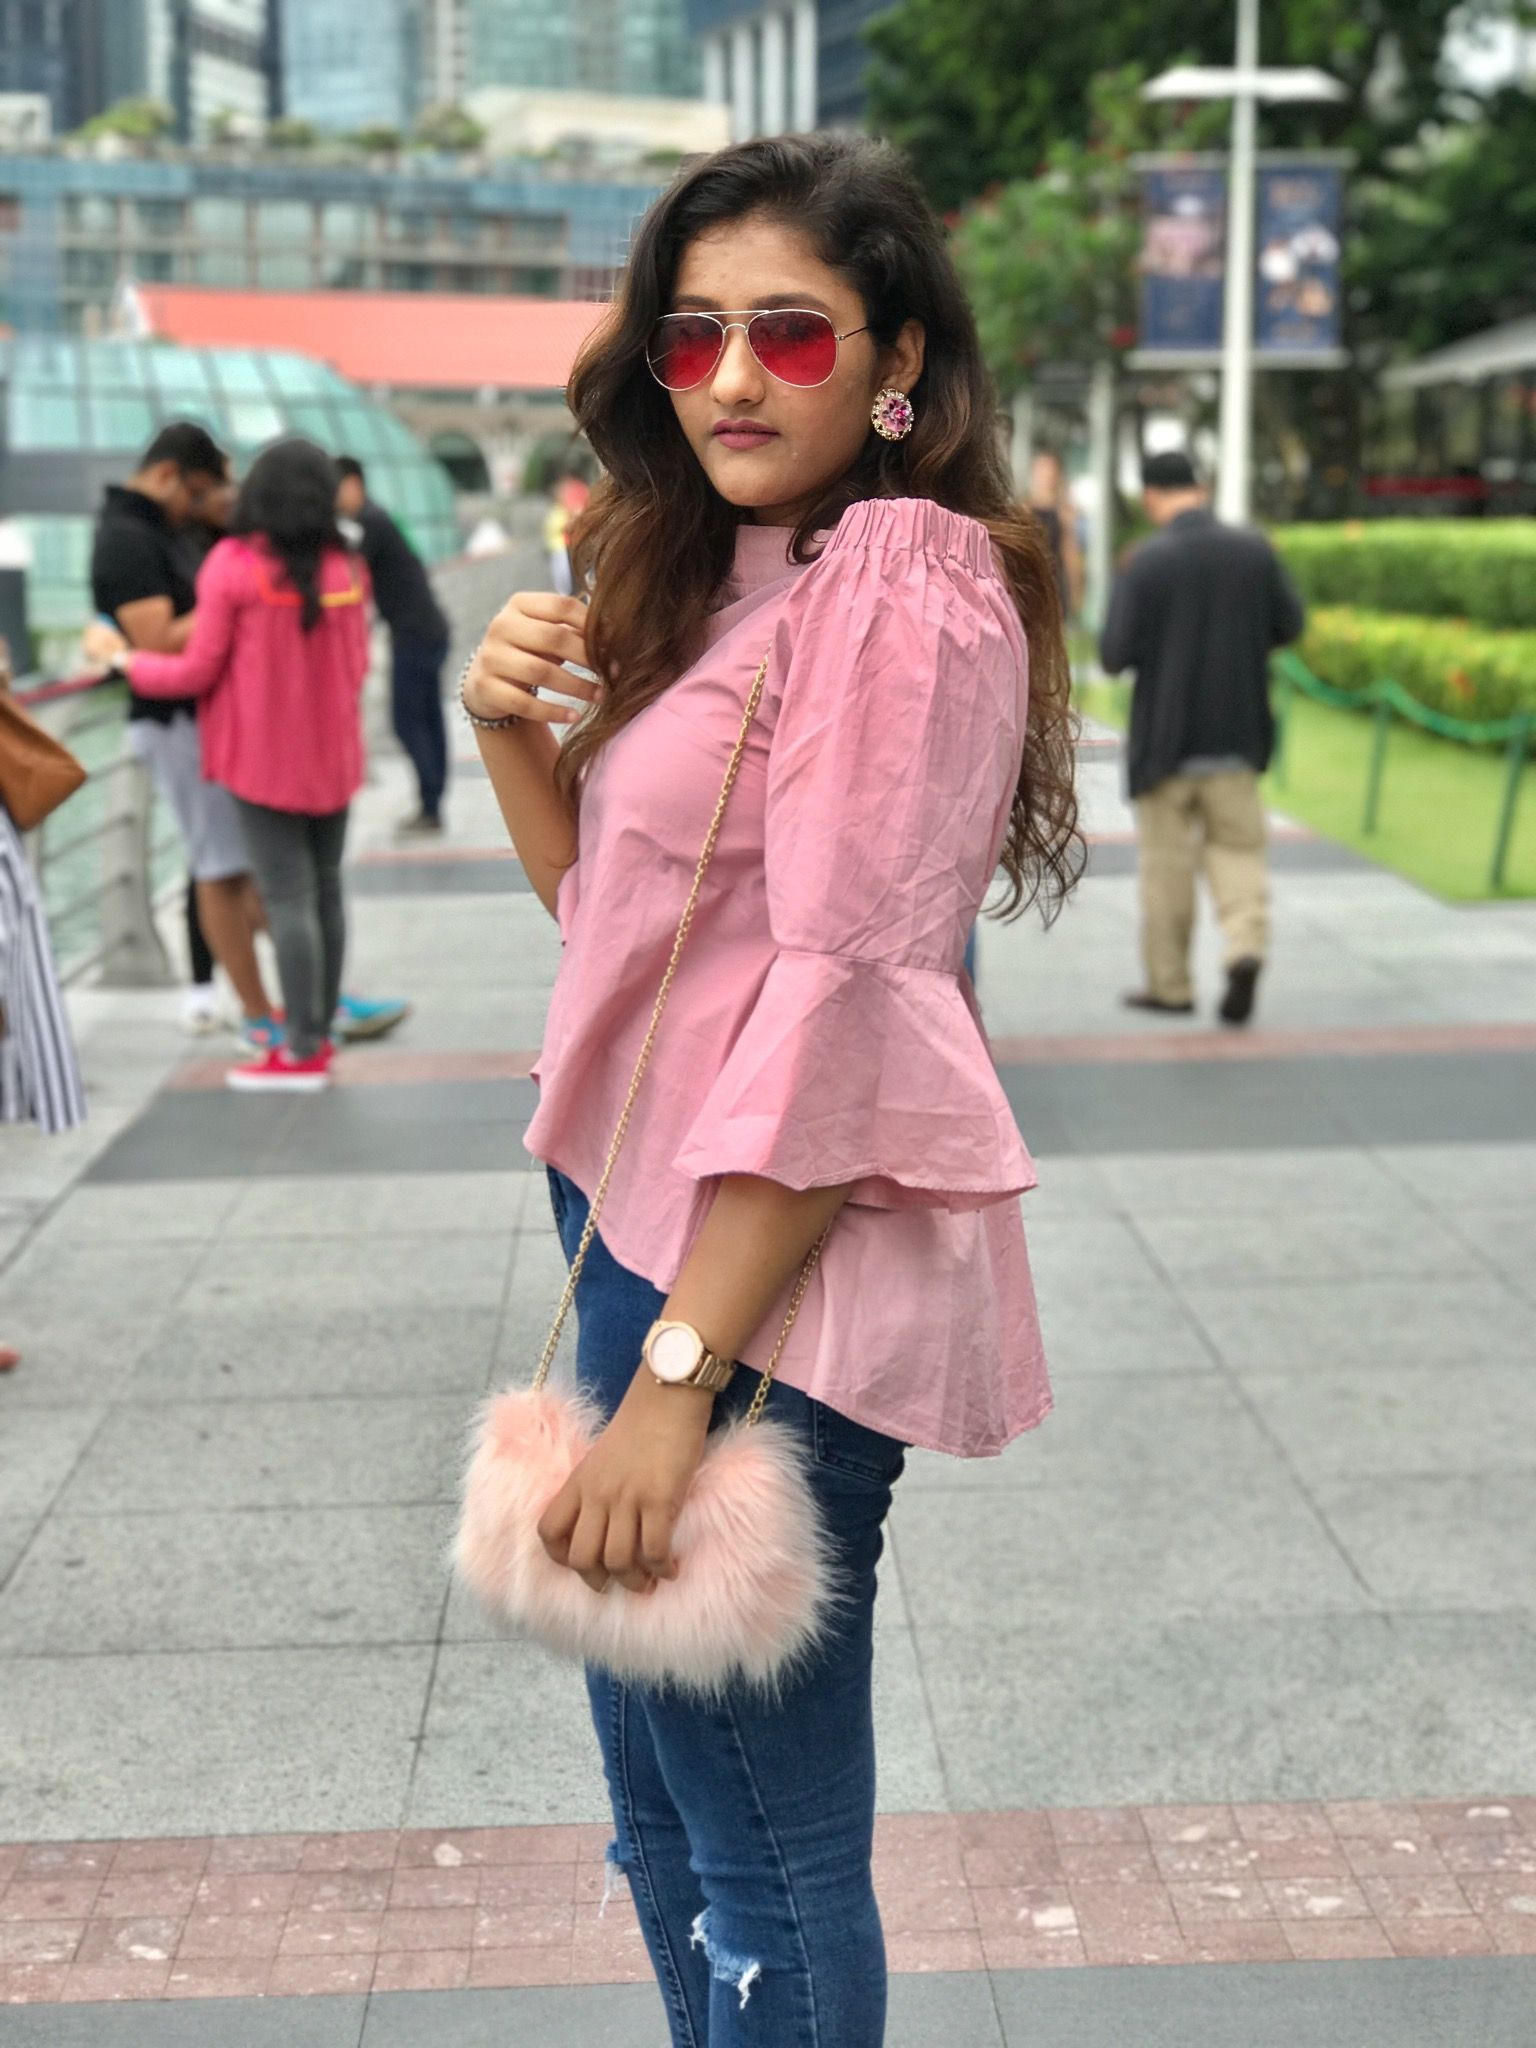 Pink top, off shoulder, casual ootd, chic outfit ideas ...